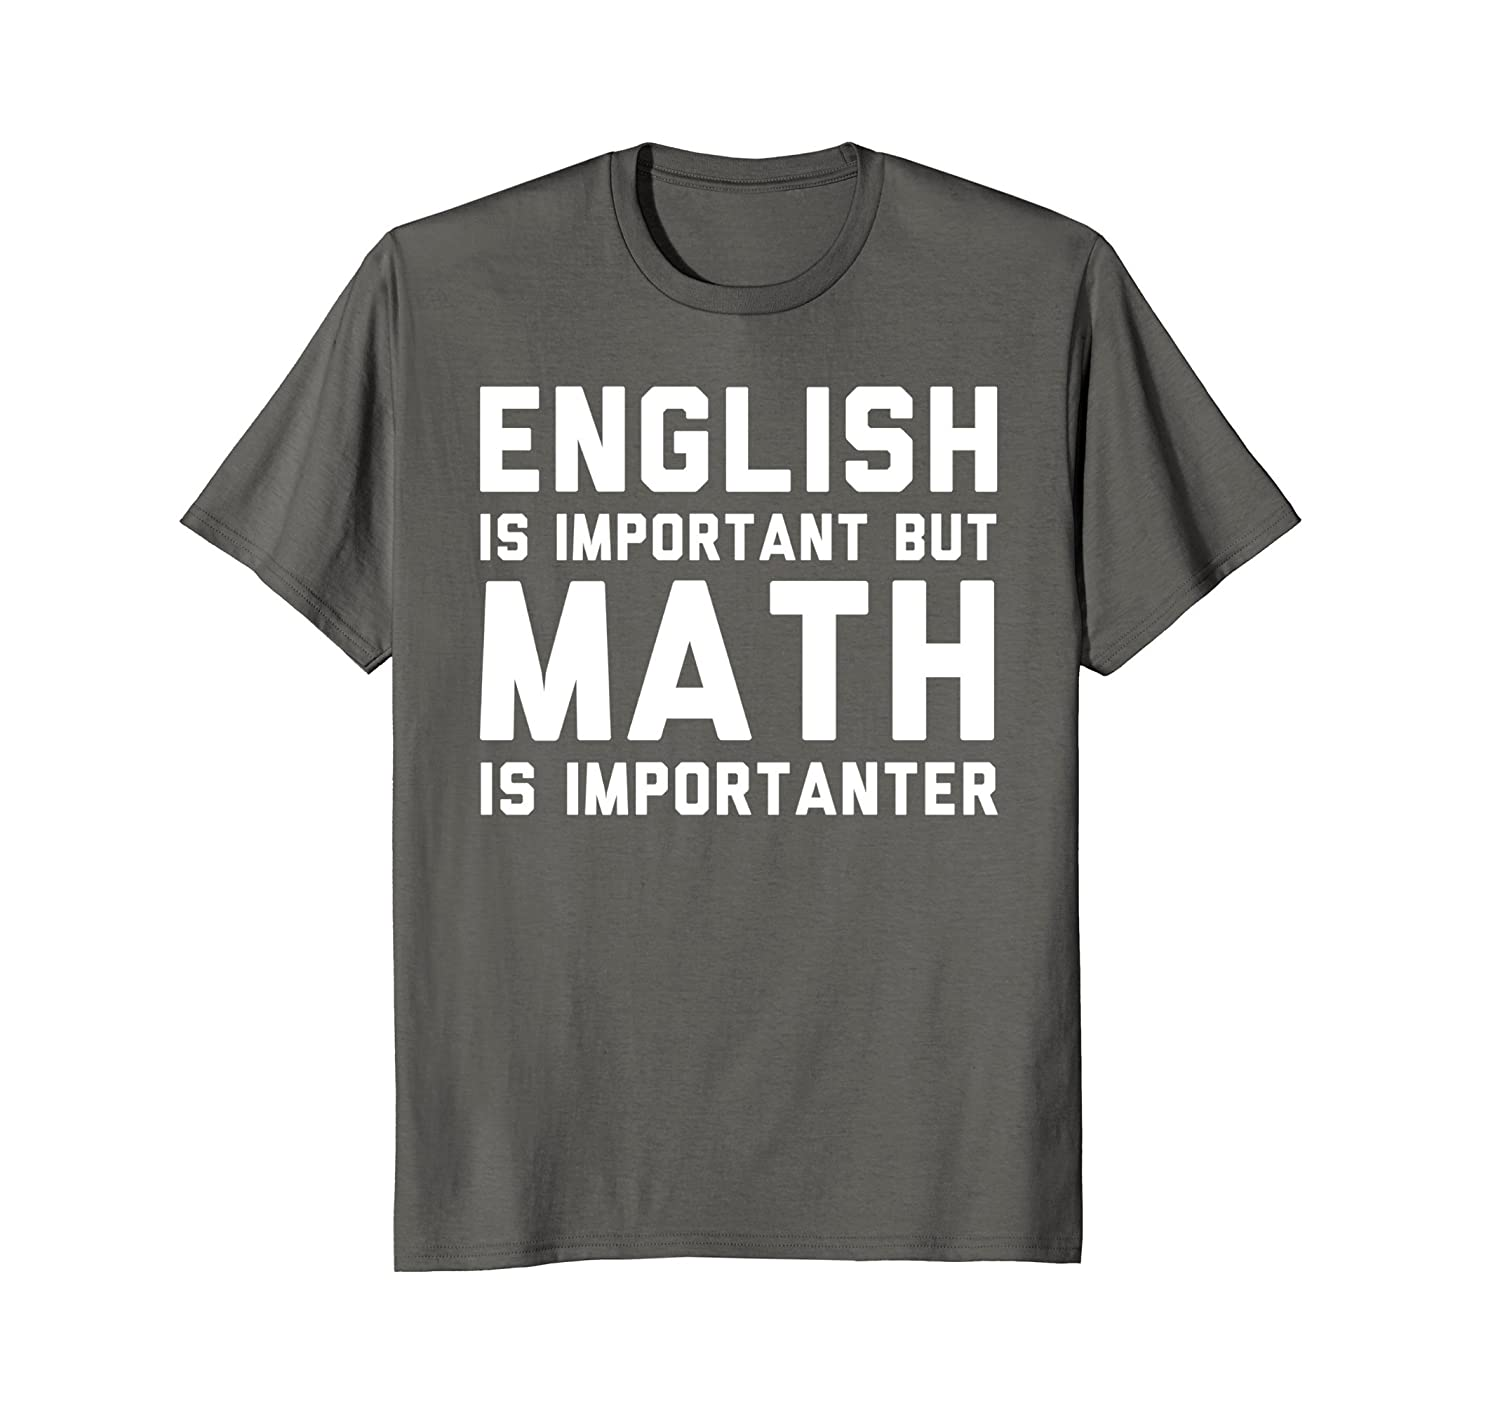 Amazon.com: English Is Important But Math Is Importanter T-Shirt ...